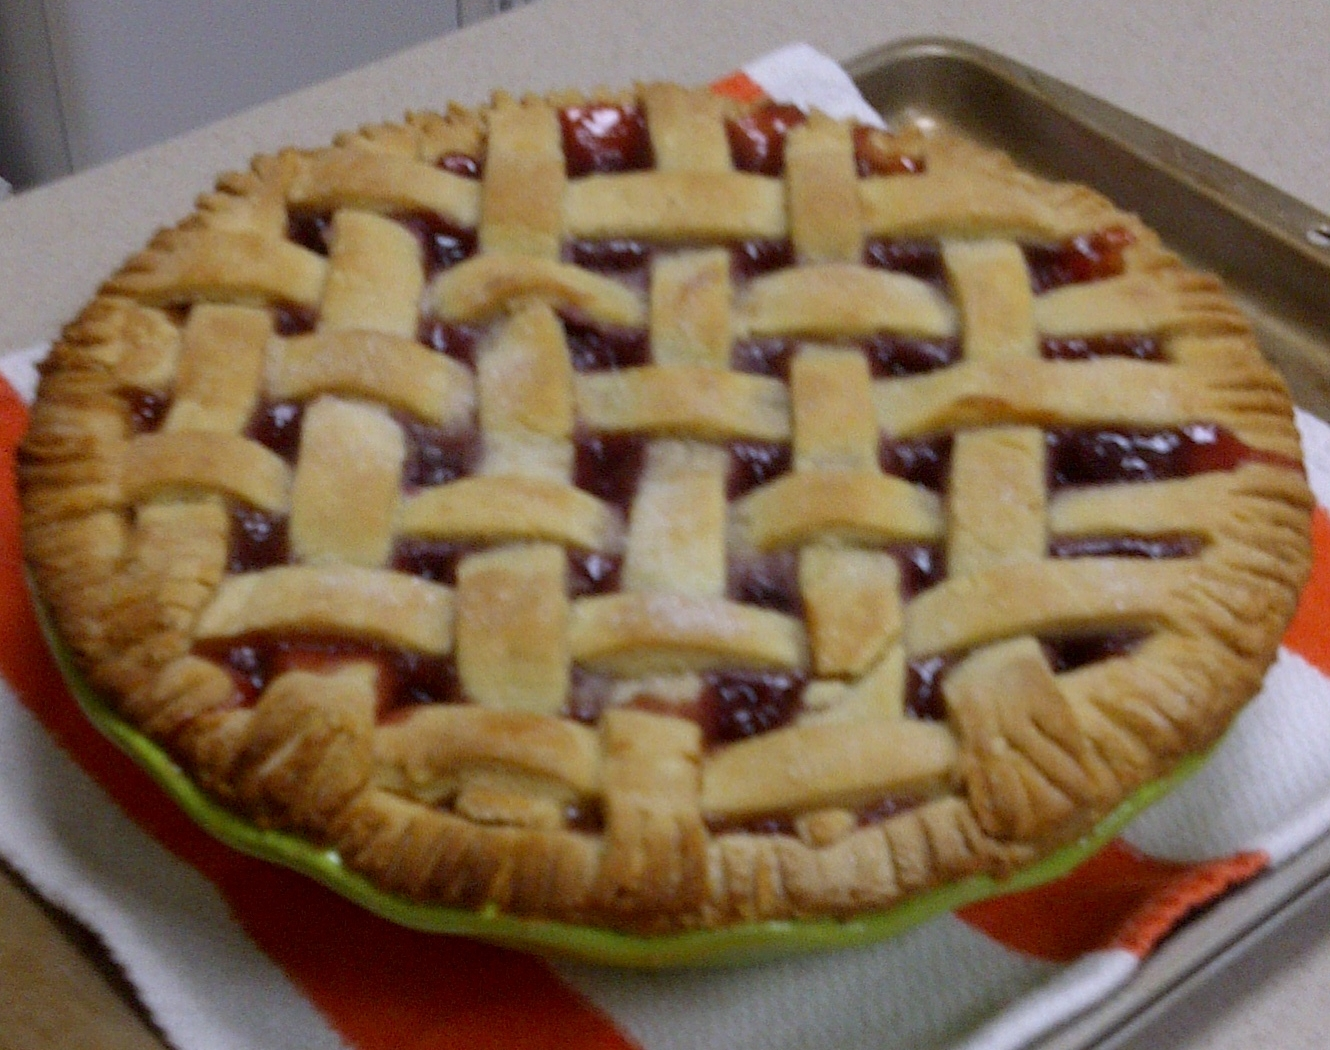 Rain, Rain, if you're gonna stay, I'll bake a cherry pie today!